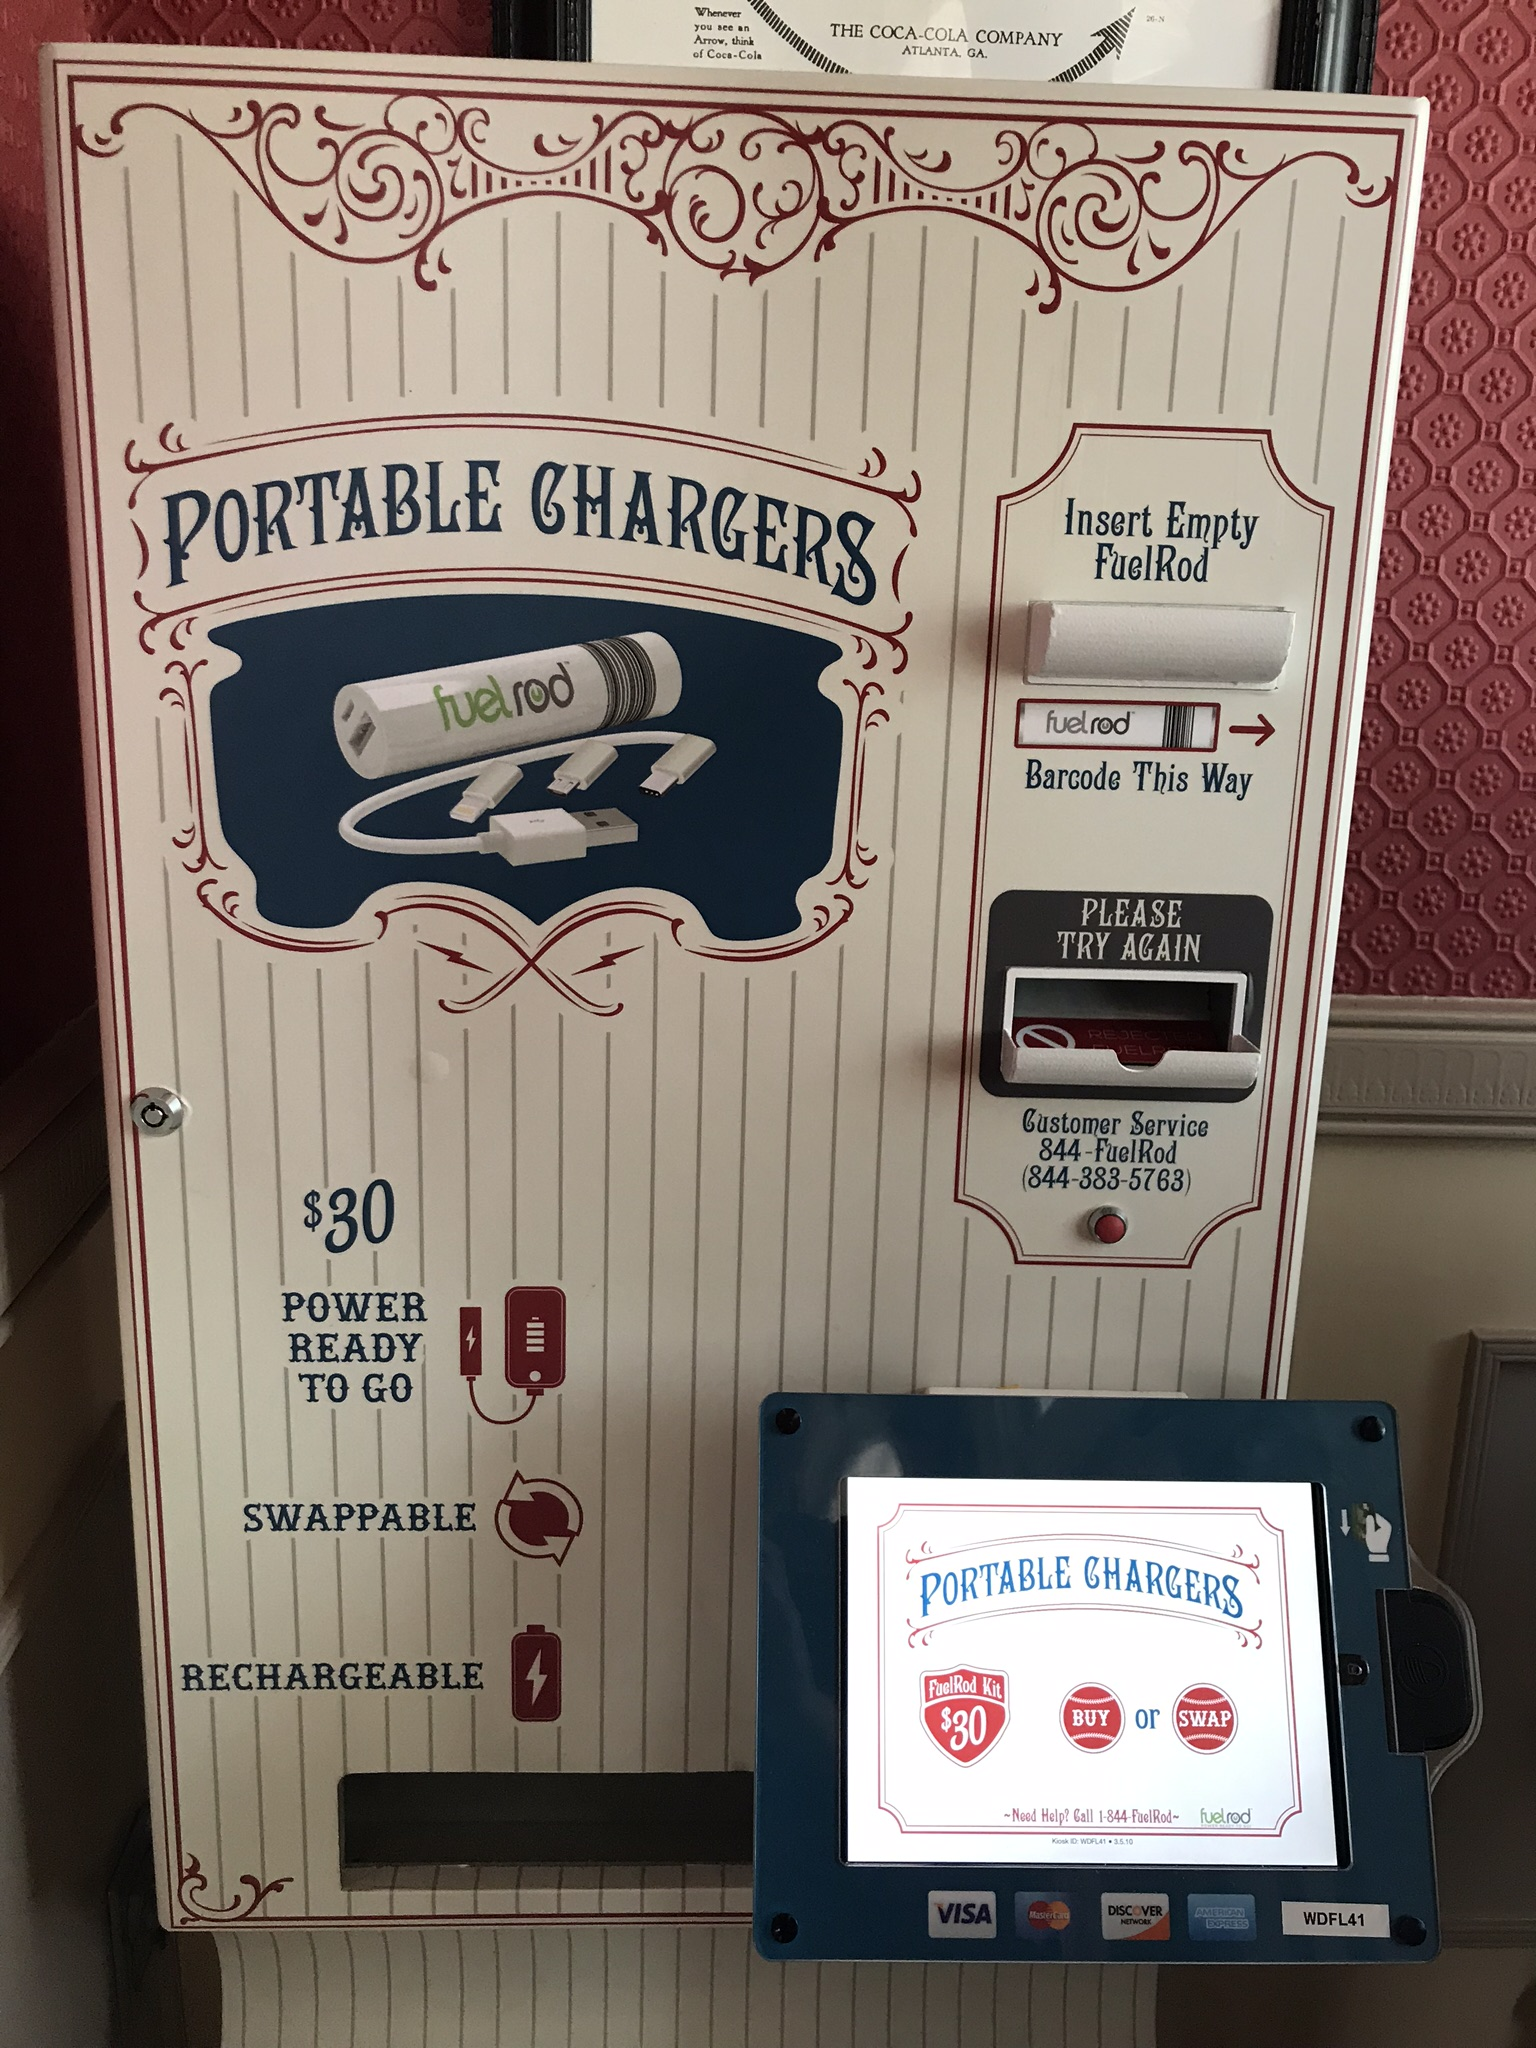 fuelrod disney world kiosk